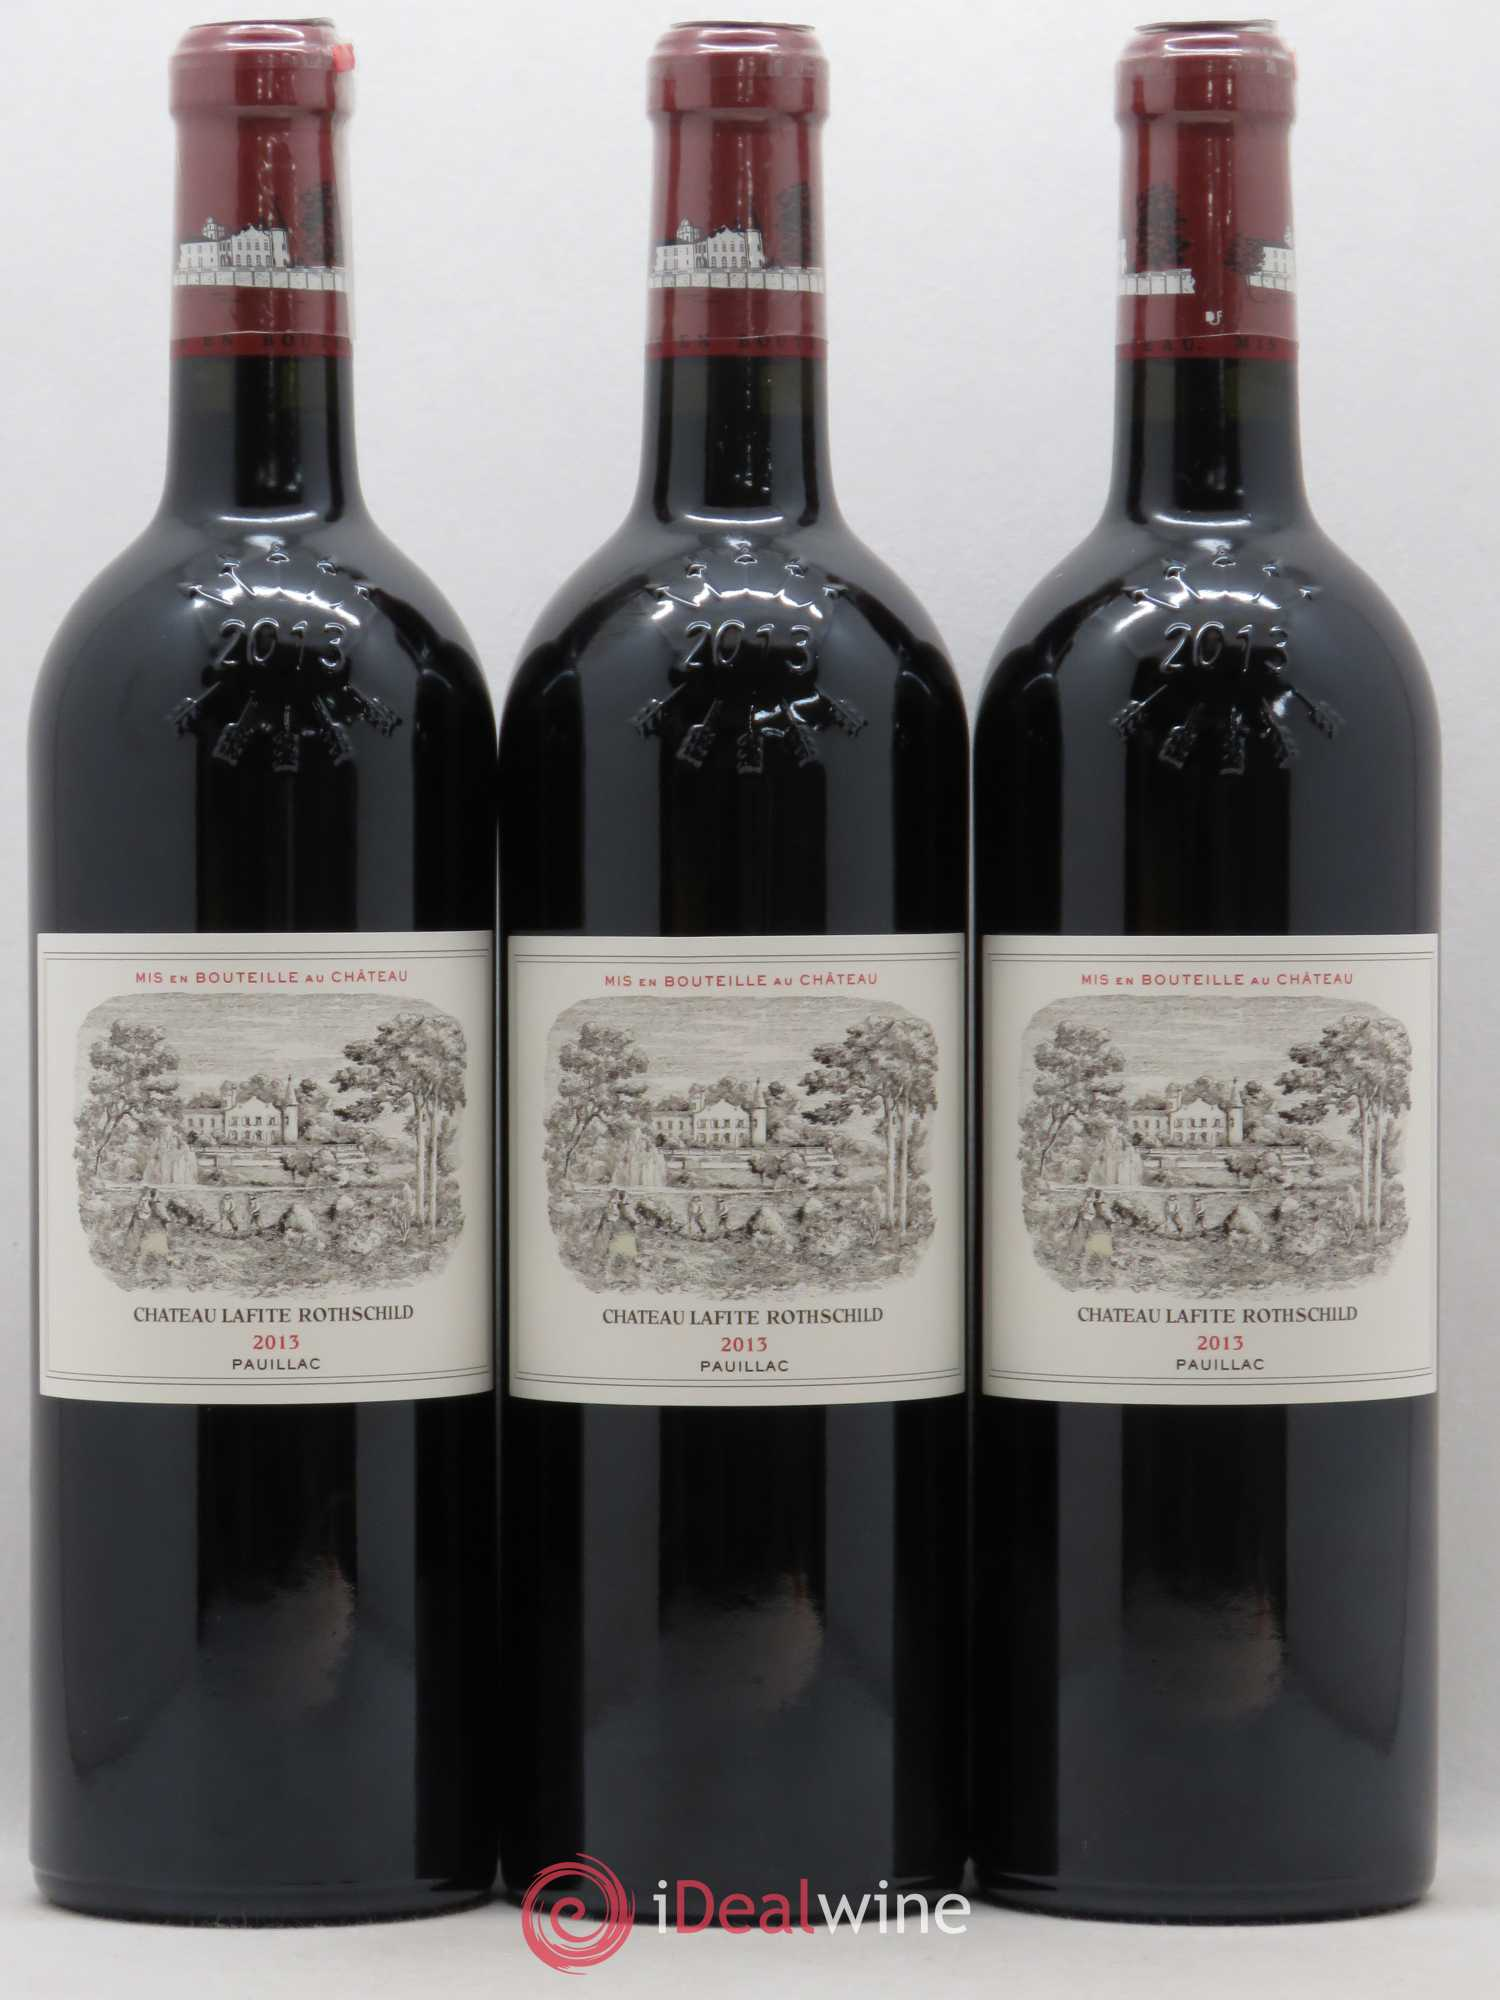 Château Lafite Rothschild 1er Grand Cru Classé  2013 - Lot of 3 Bottles